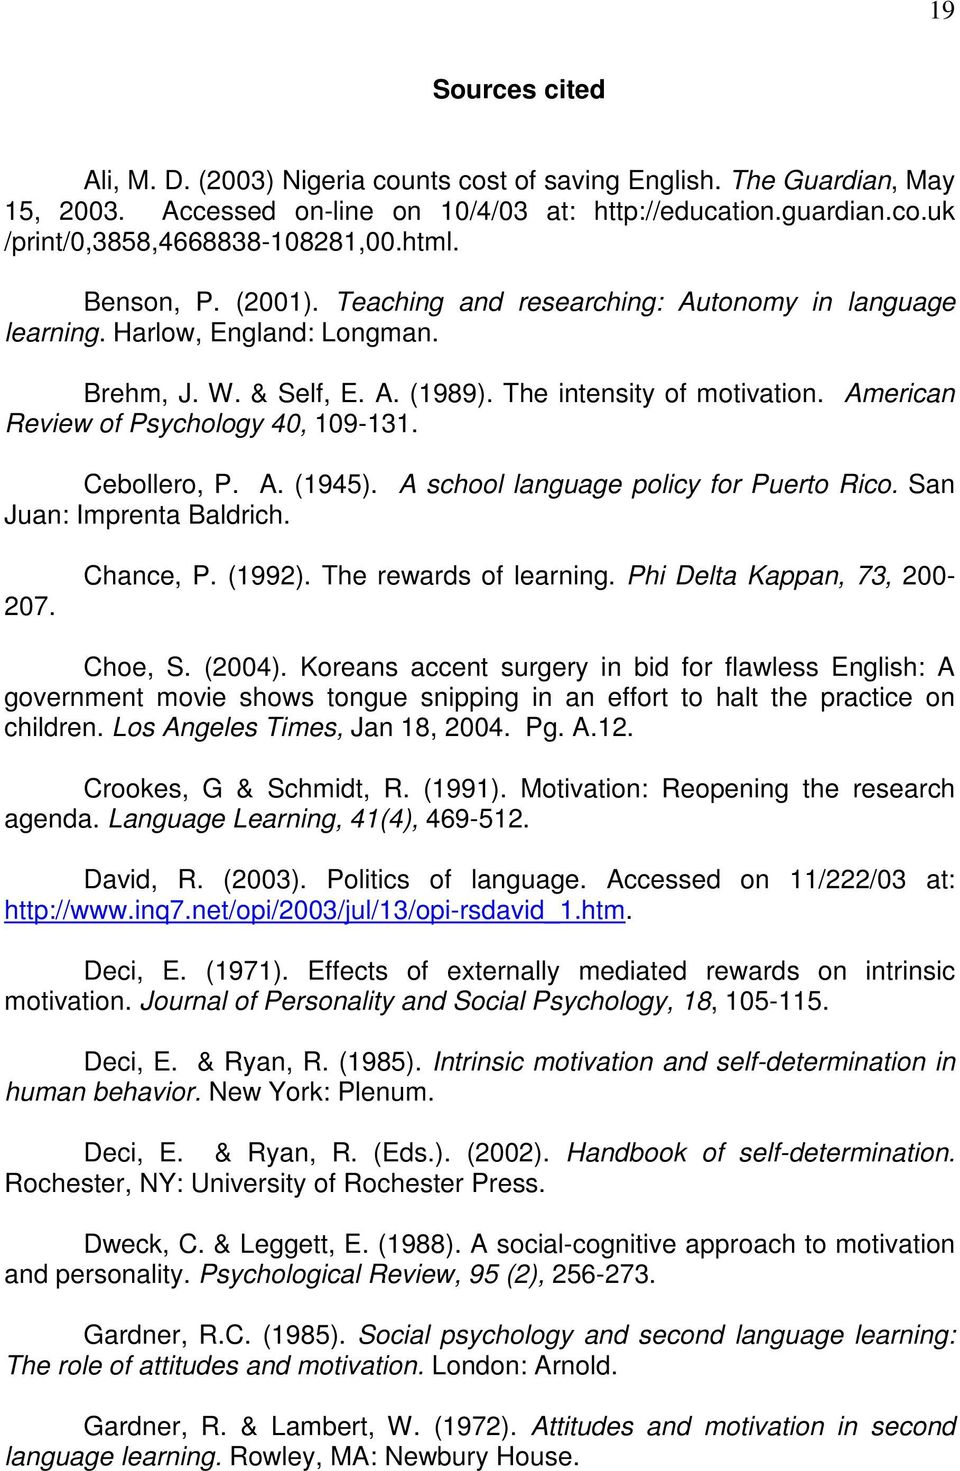 American Review of Psychology 40, 109-131. Cebollero, P. A. (1945). A school language policy for Puerto Rico. San Juan: Imprenta Baldrich. 207. Chance, P. (1992). The rewards of learning.